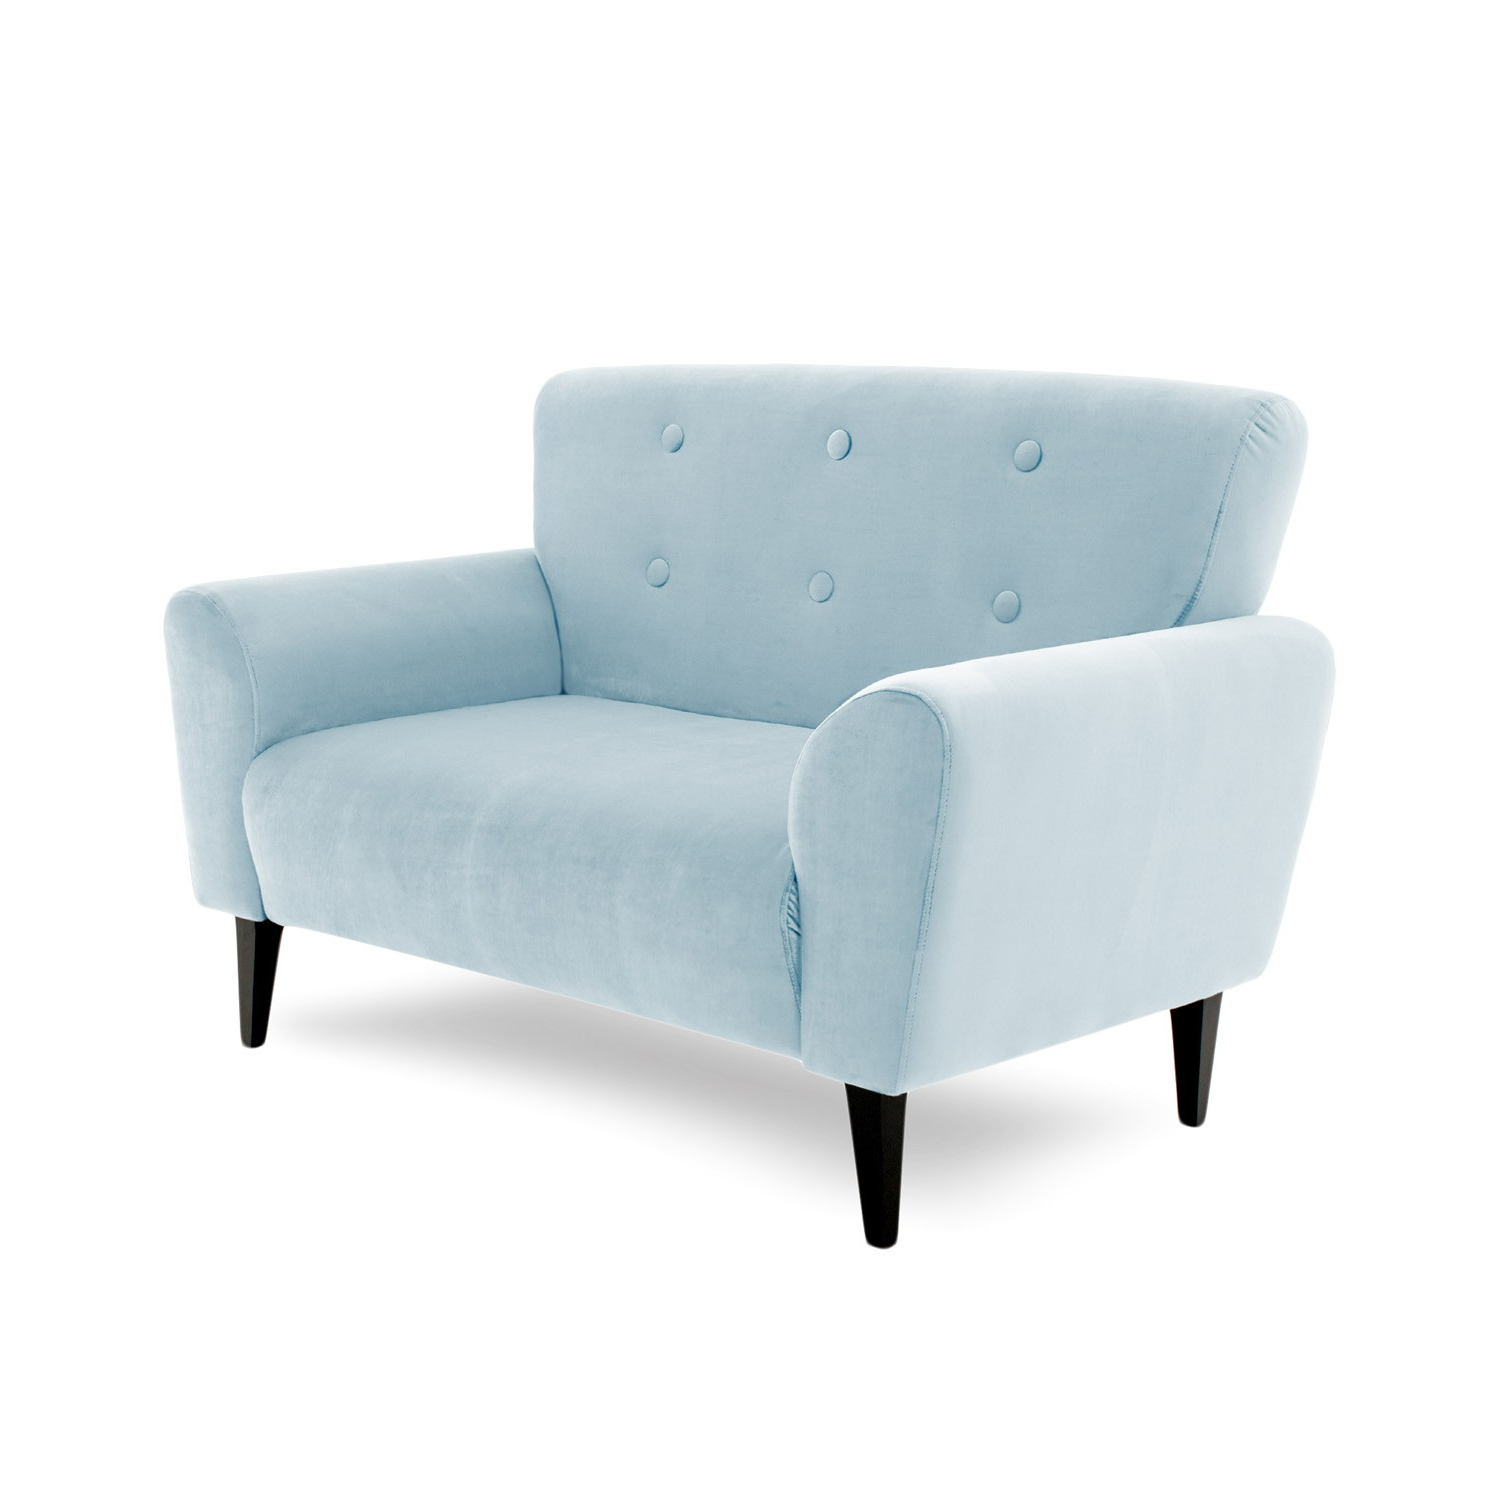 Kiara 2 Seater Pertaining To Most Recently Released Kiara Sofa Chairs (View 6 of 20)